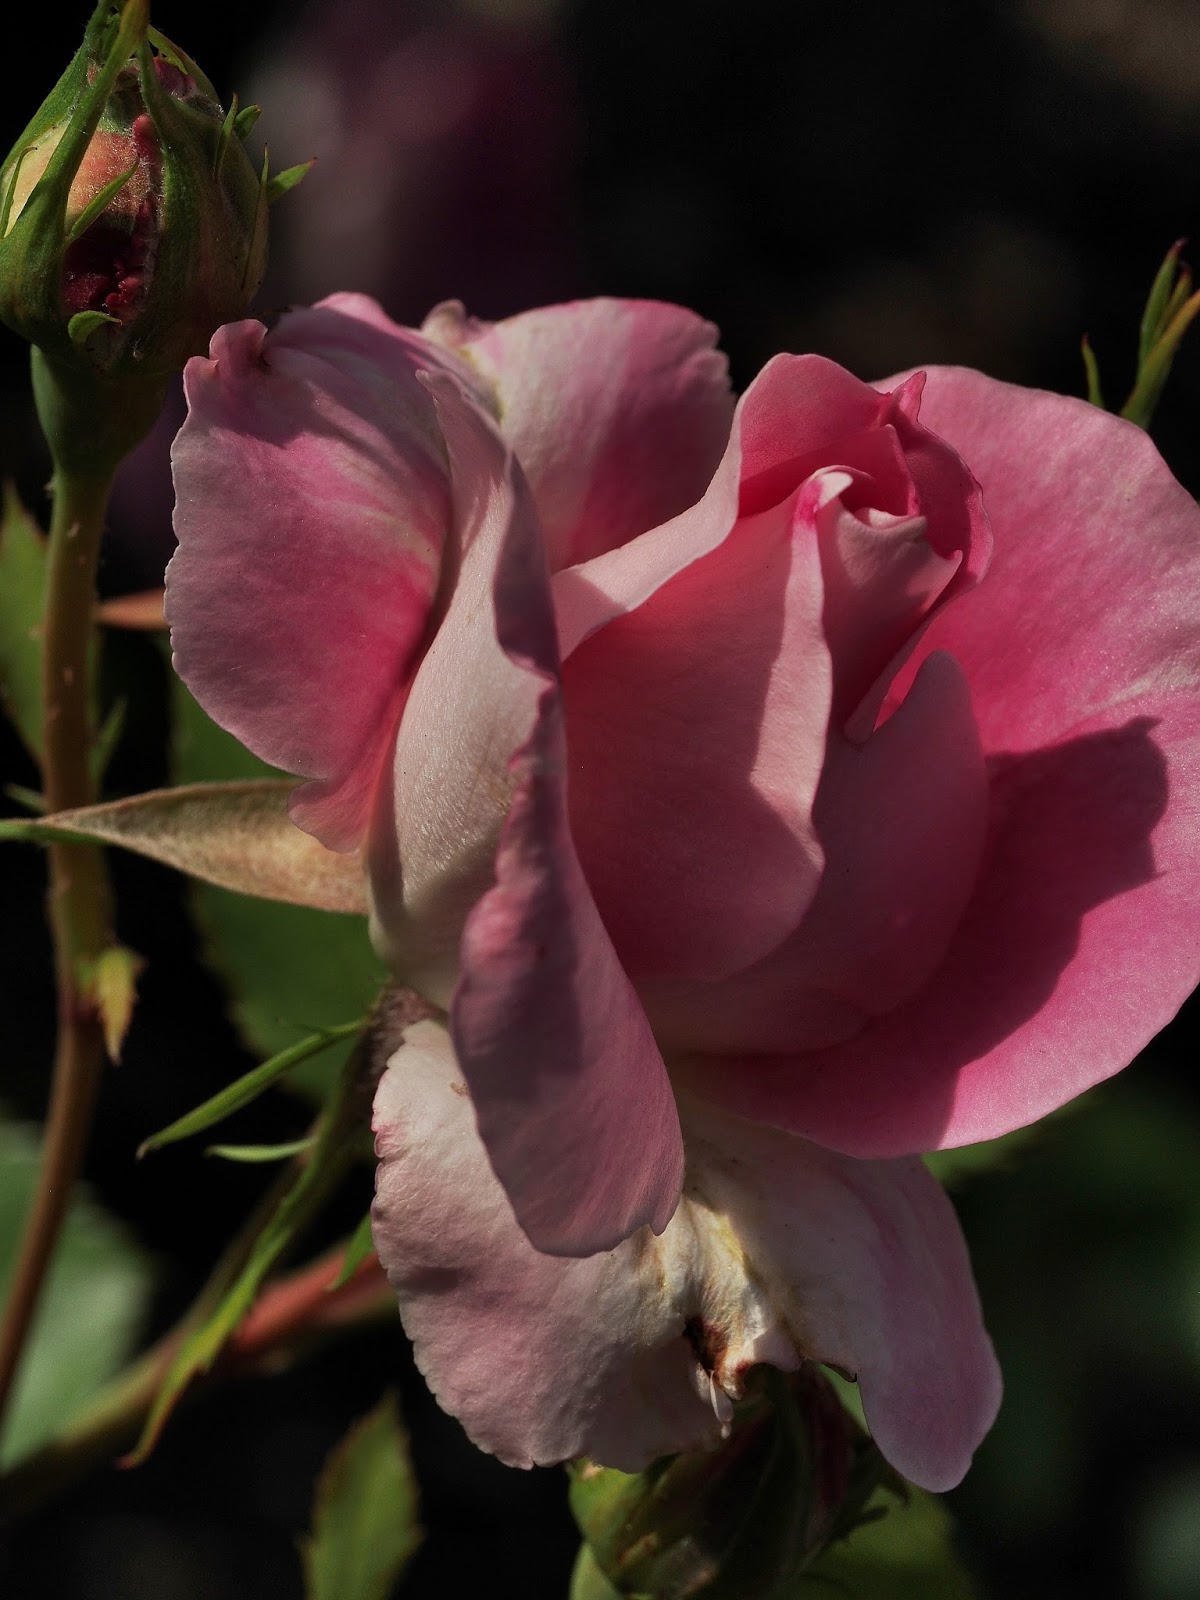 Rose Unfurling, #rose #roses #conservatorygarden #centralpark #nyc 2014